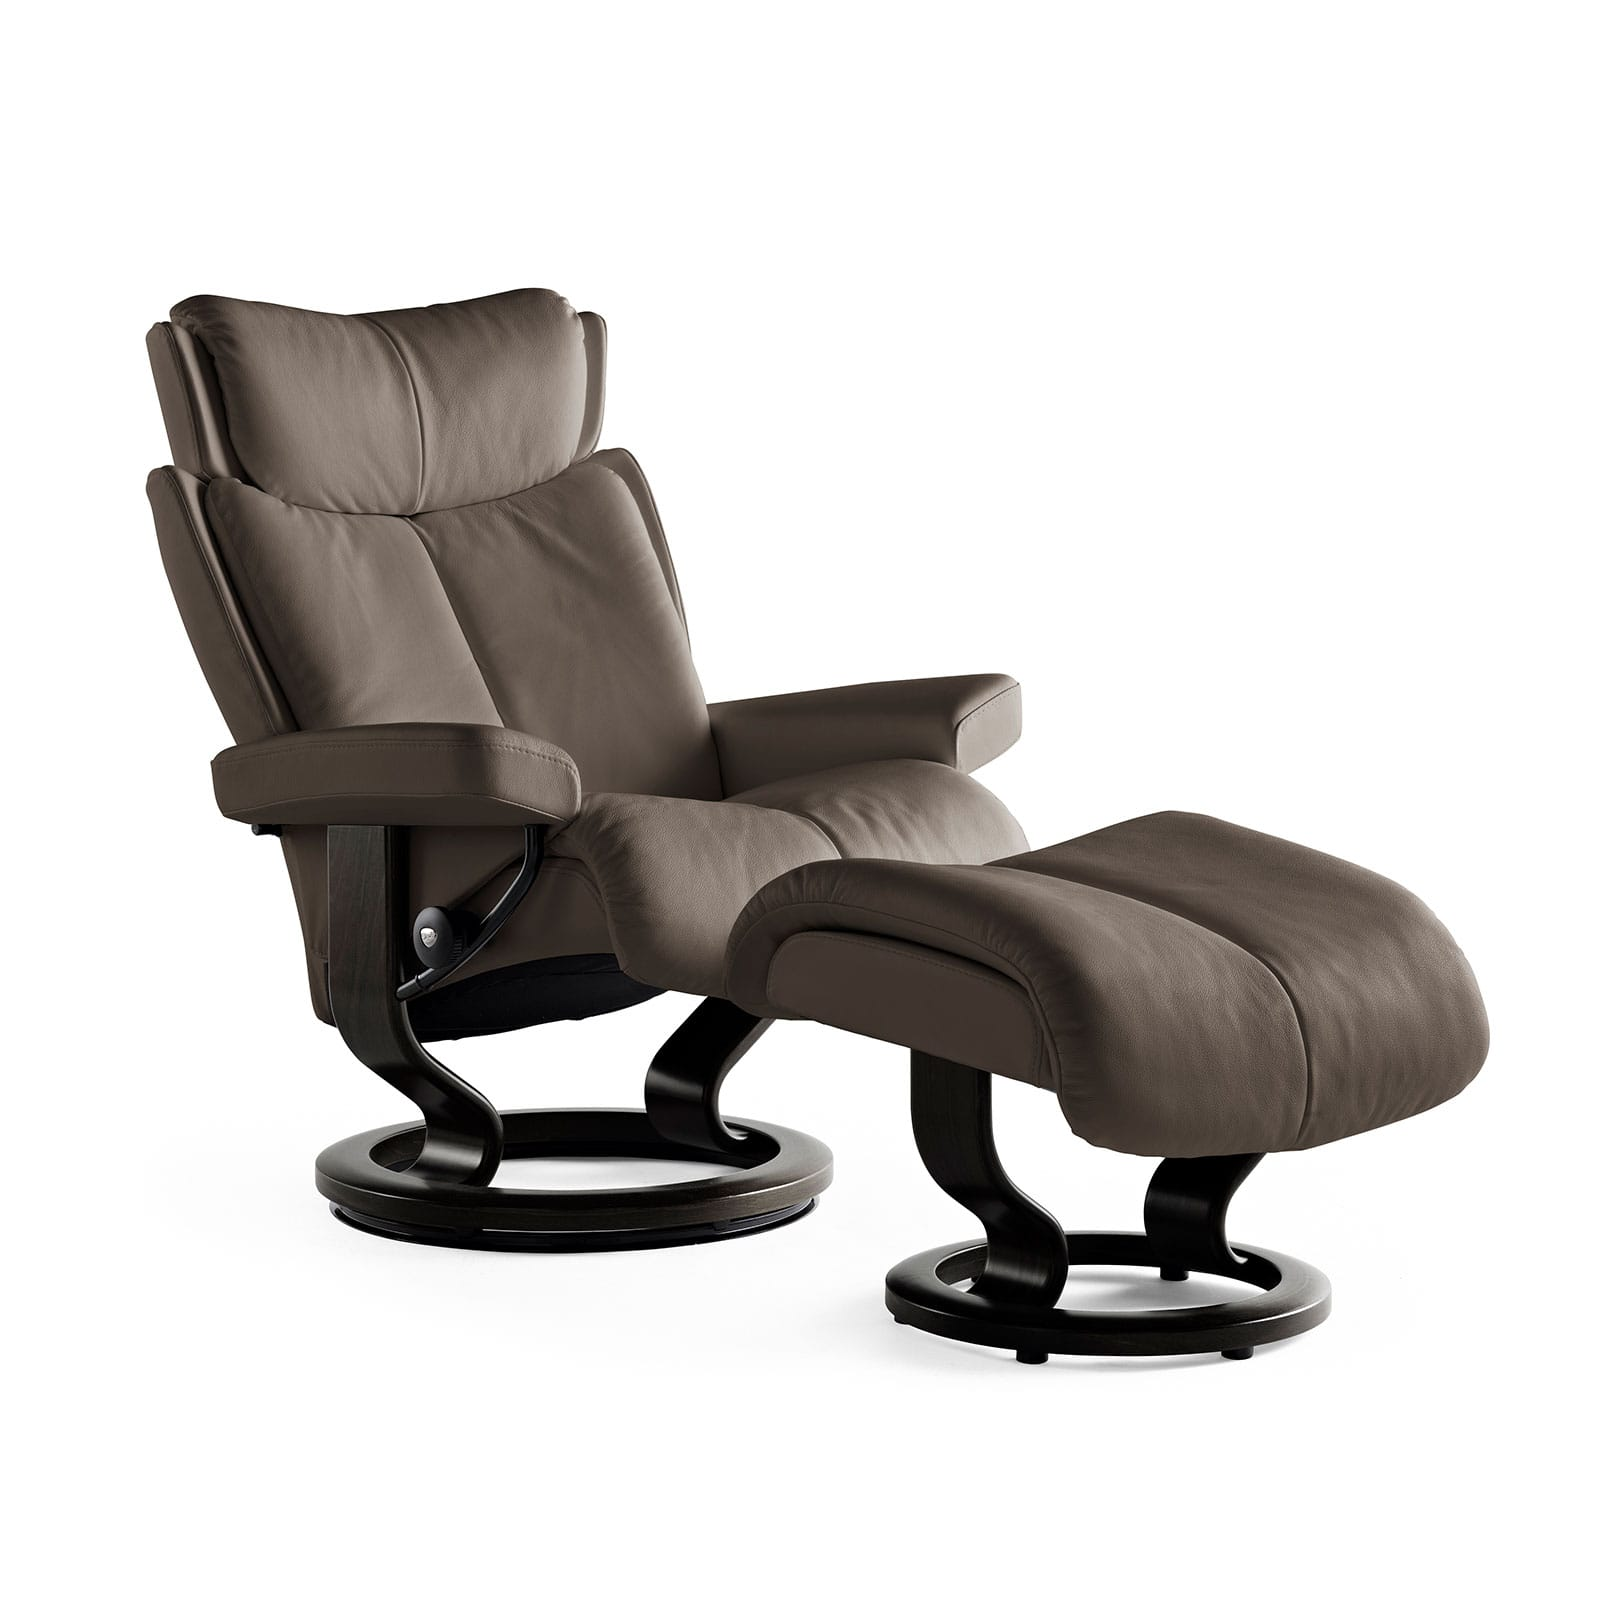 Relaxsessel Stressless Stressless Relaxsessel Magic Lederfarbe Khaki Hocker Stressless